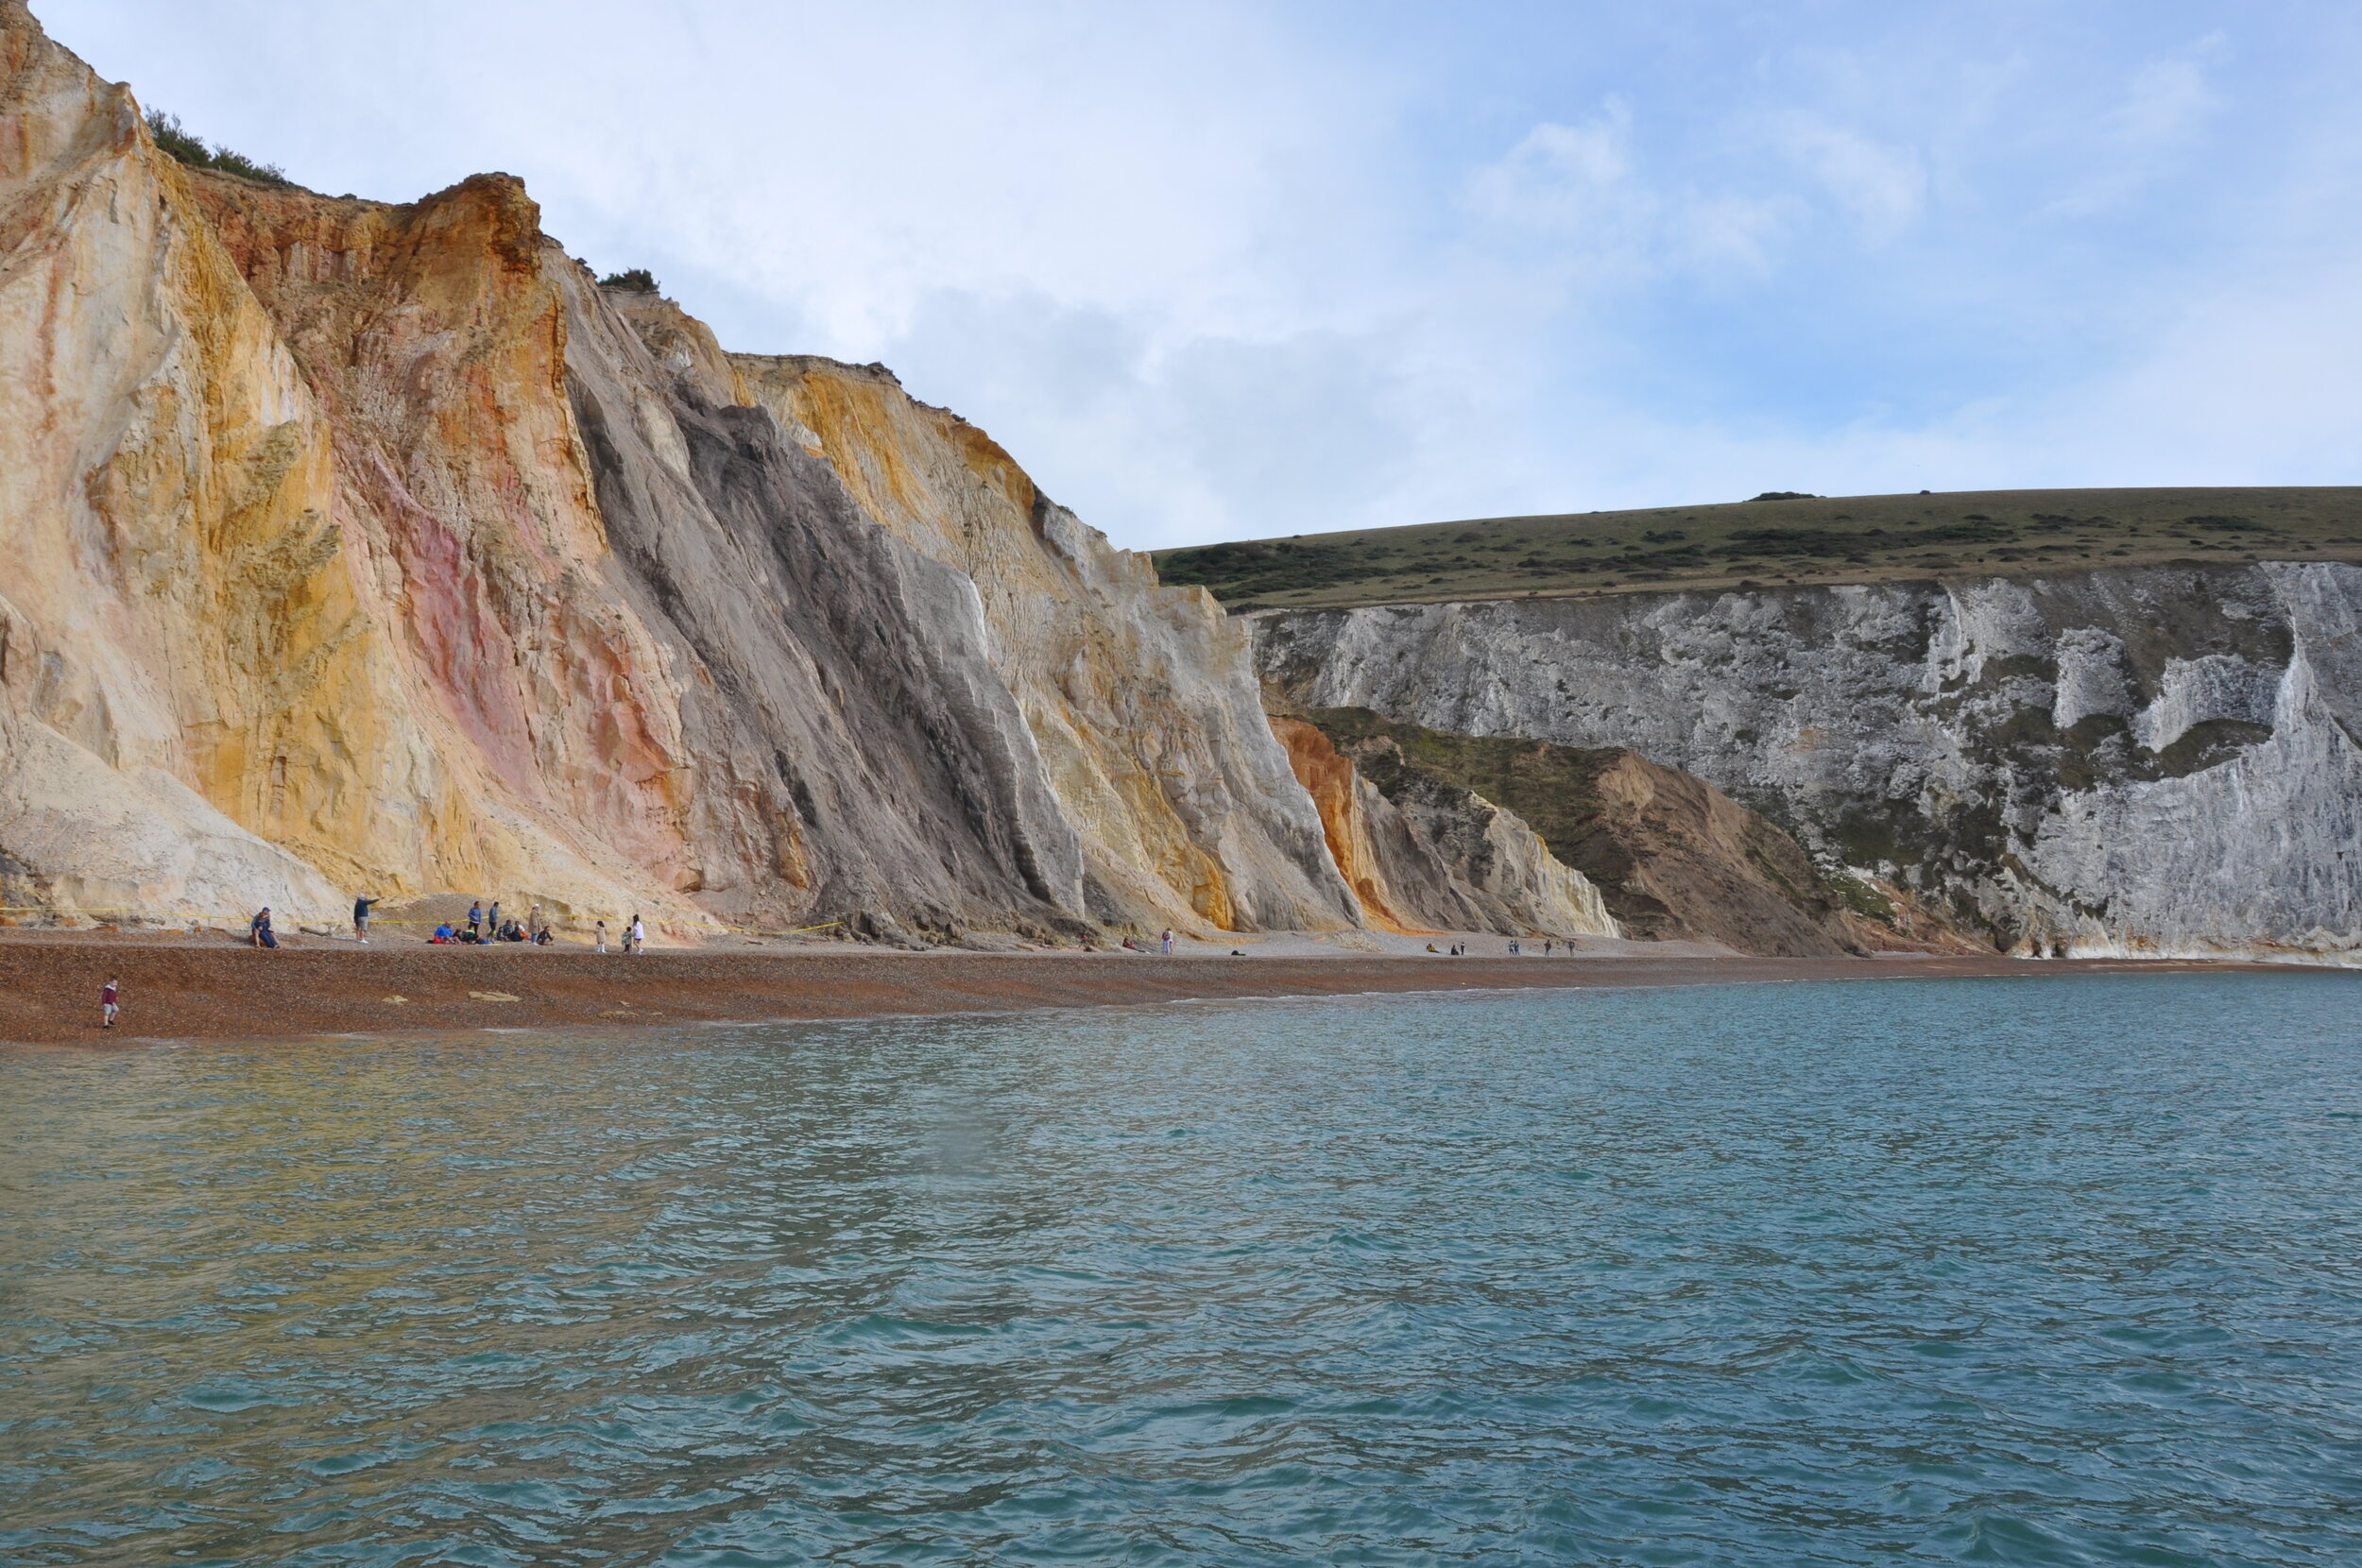 Incredible Alum Bay viewed from aboard the Ramblin' Rose.